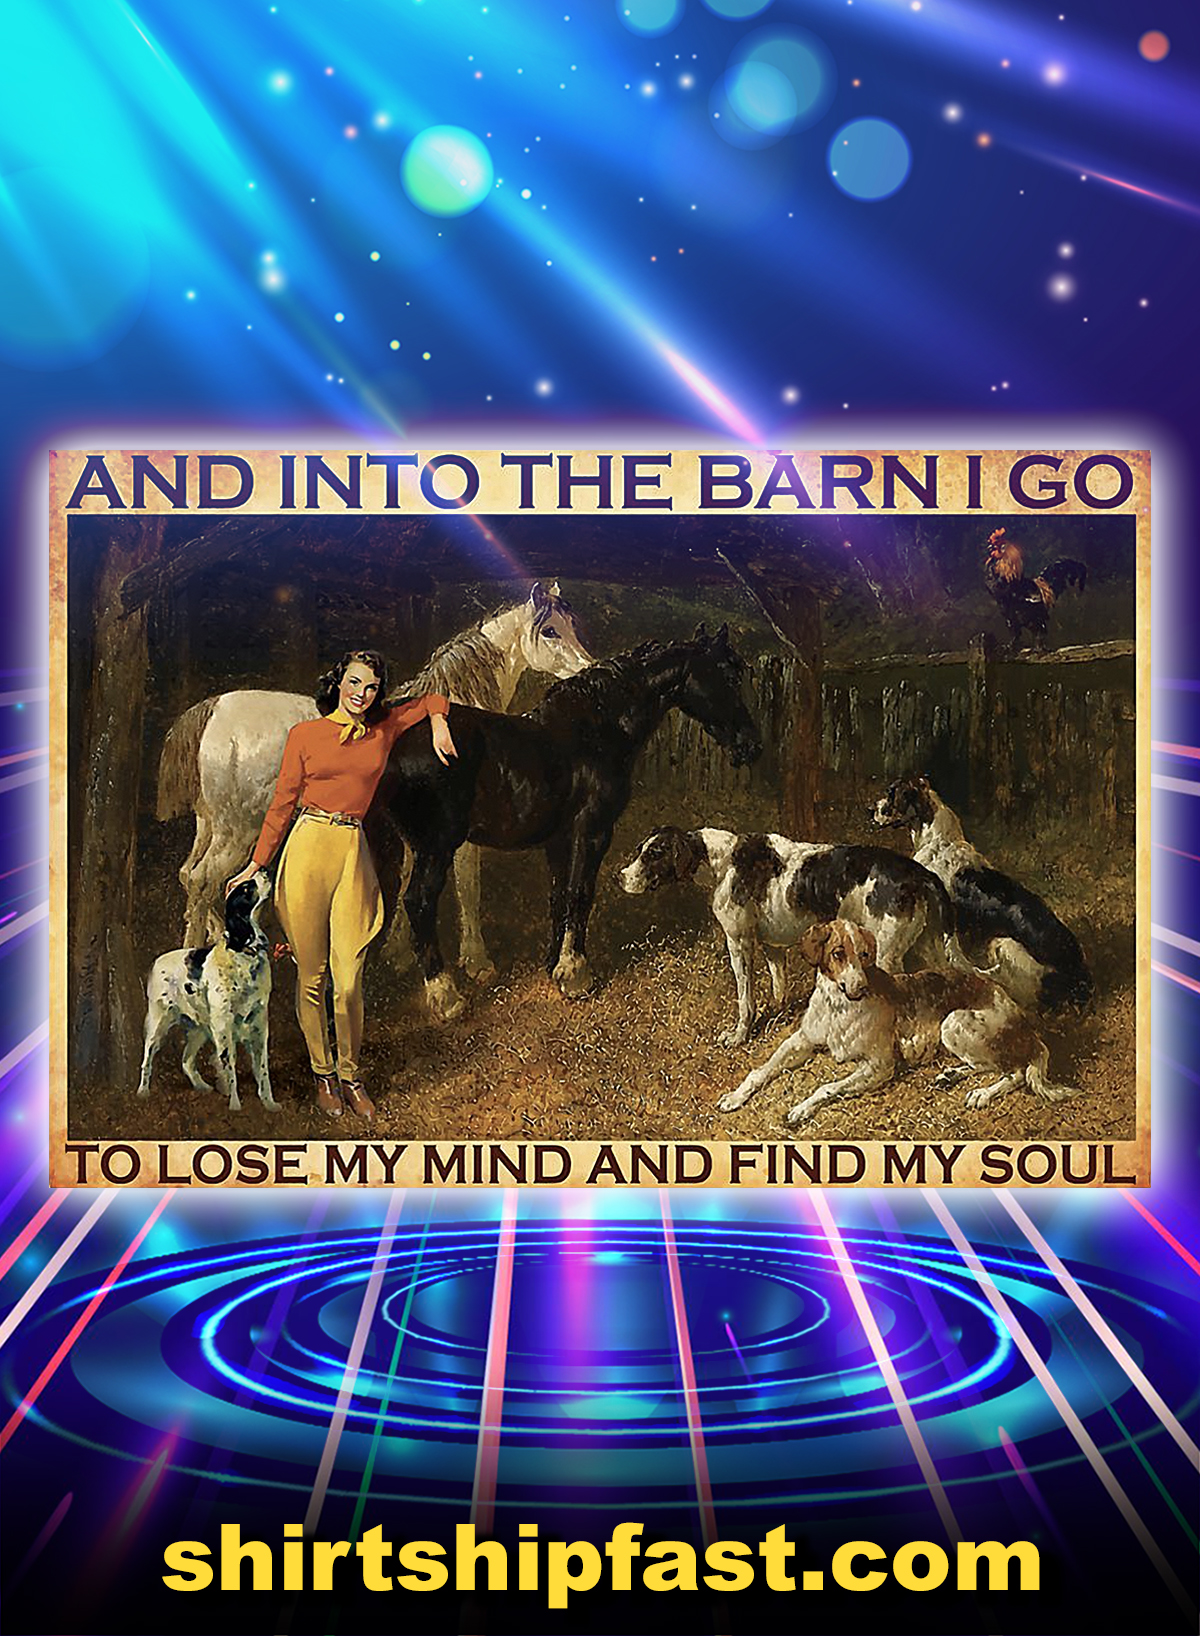 Cowgirl and into the barn I go to lose my mind and find my soul poster